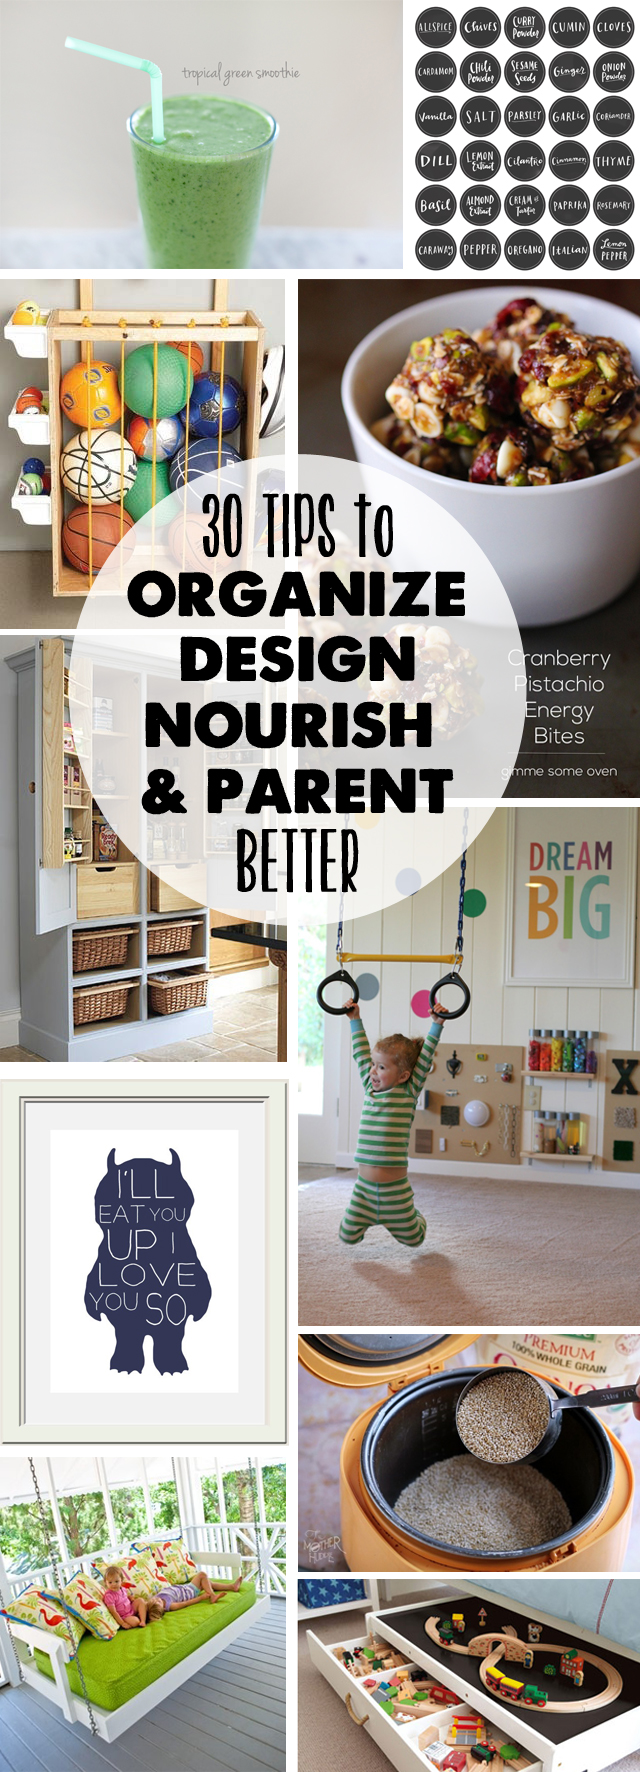 Simple, time-saving ideas on organizing, designing, eating, and parenting - love them all!